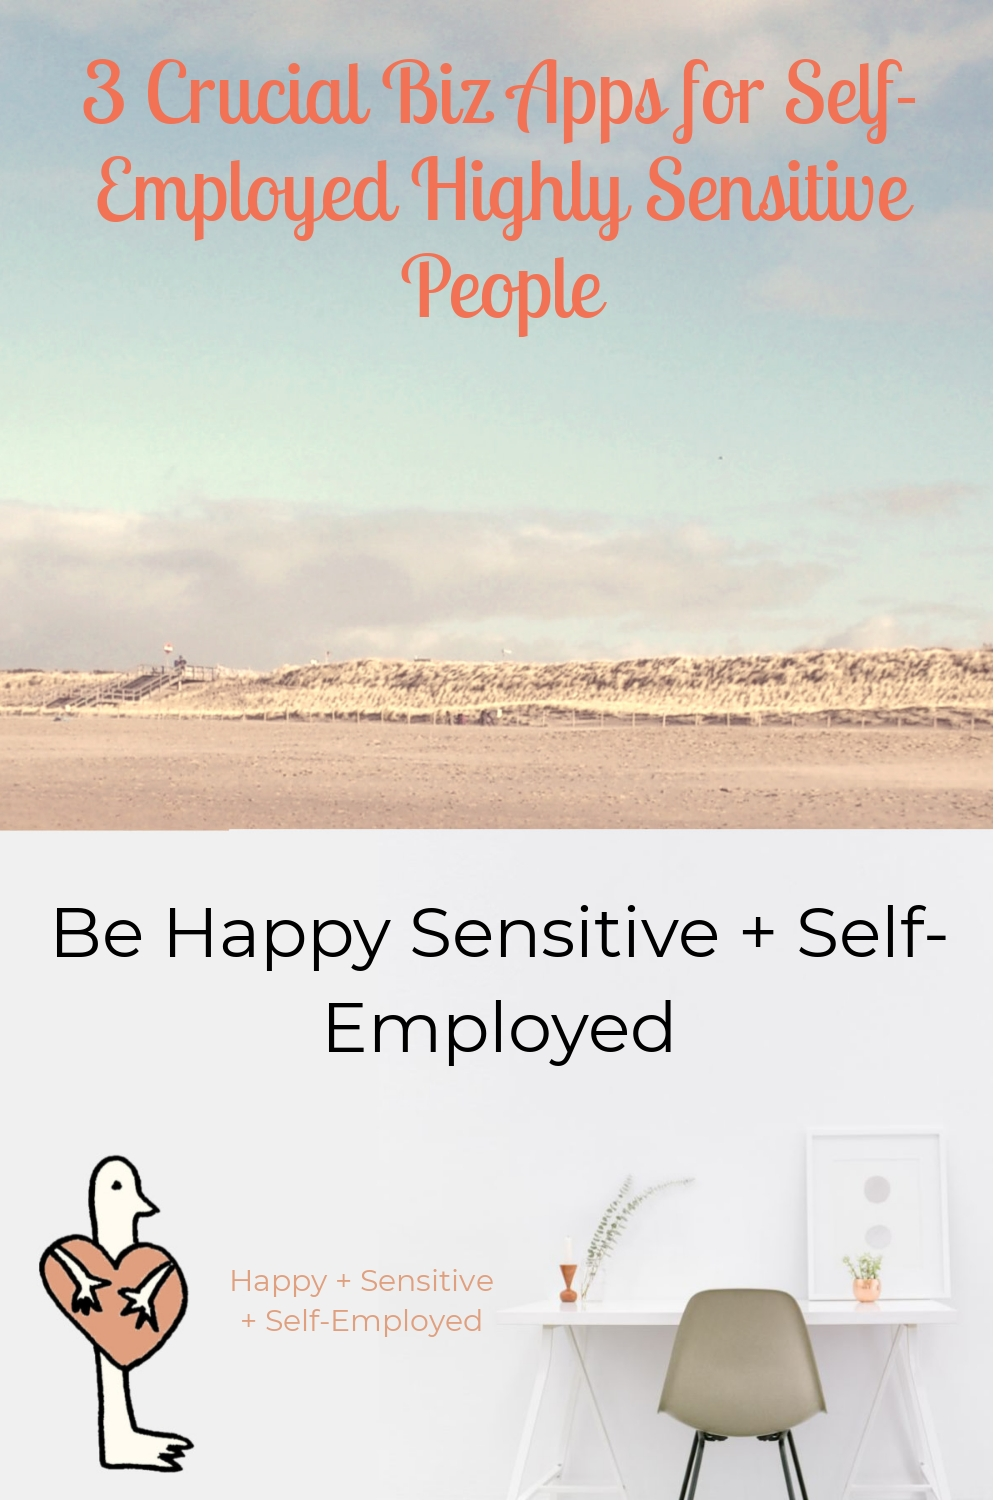 3 Crucial Biz Apps for Self-Employed Highly Sensitive People